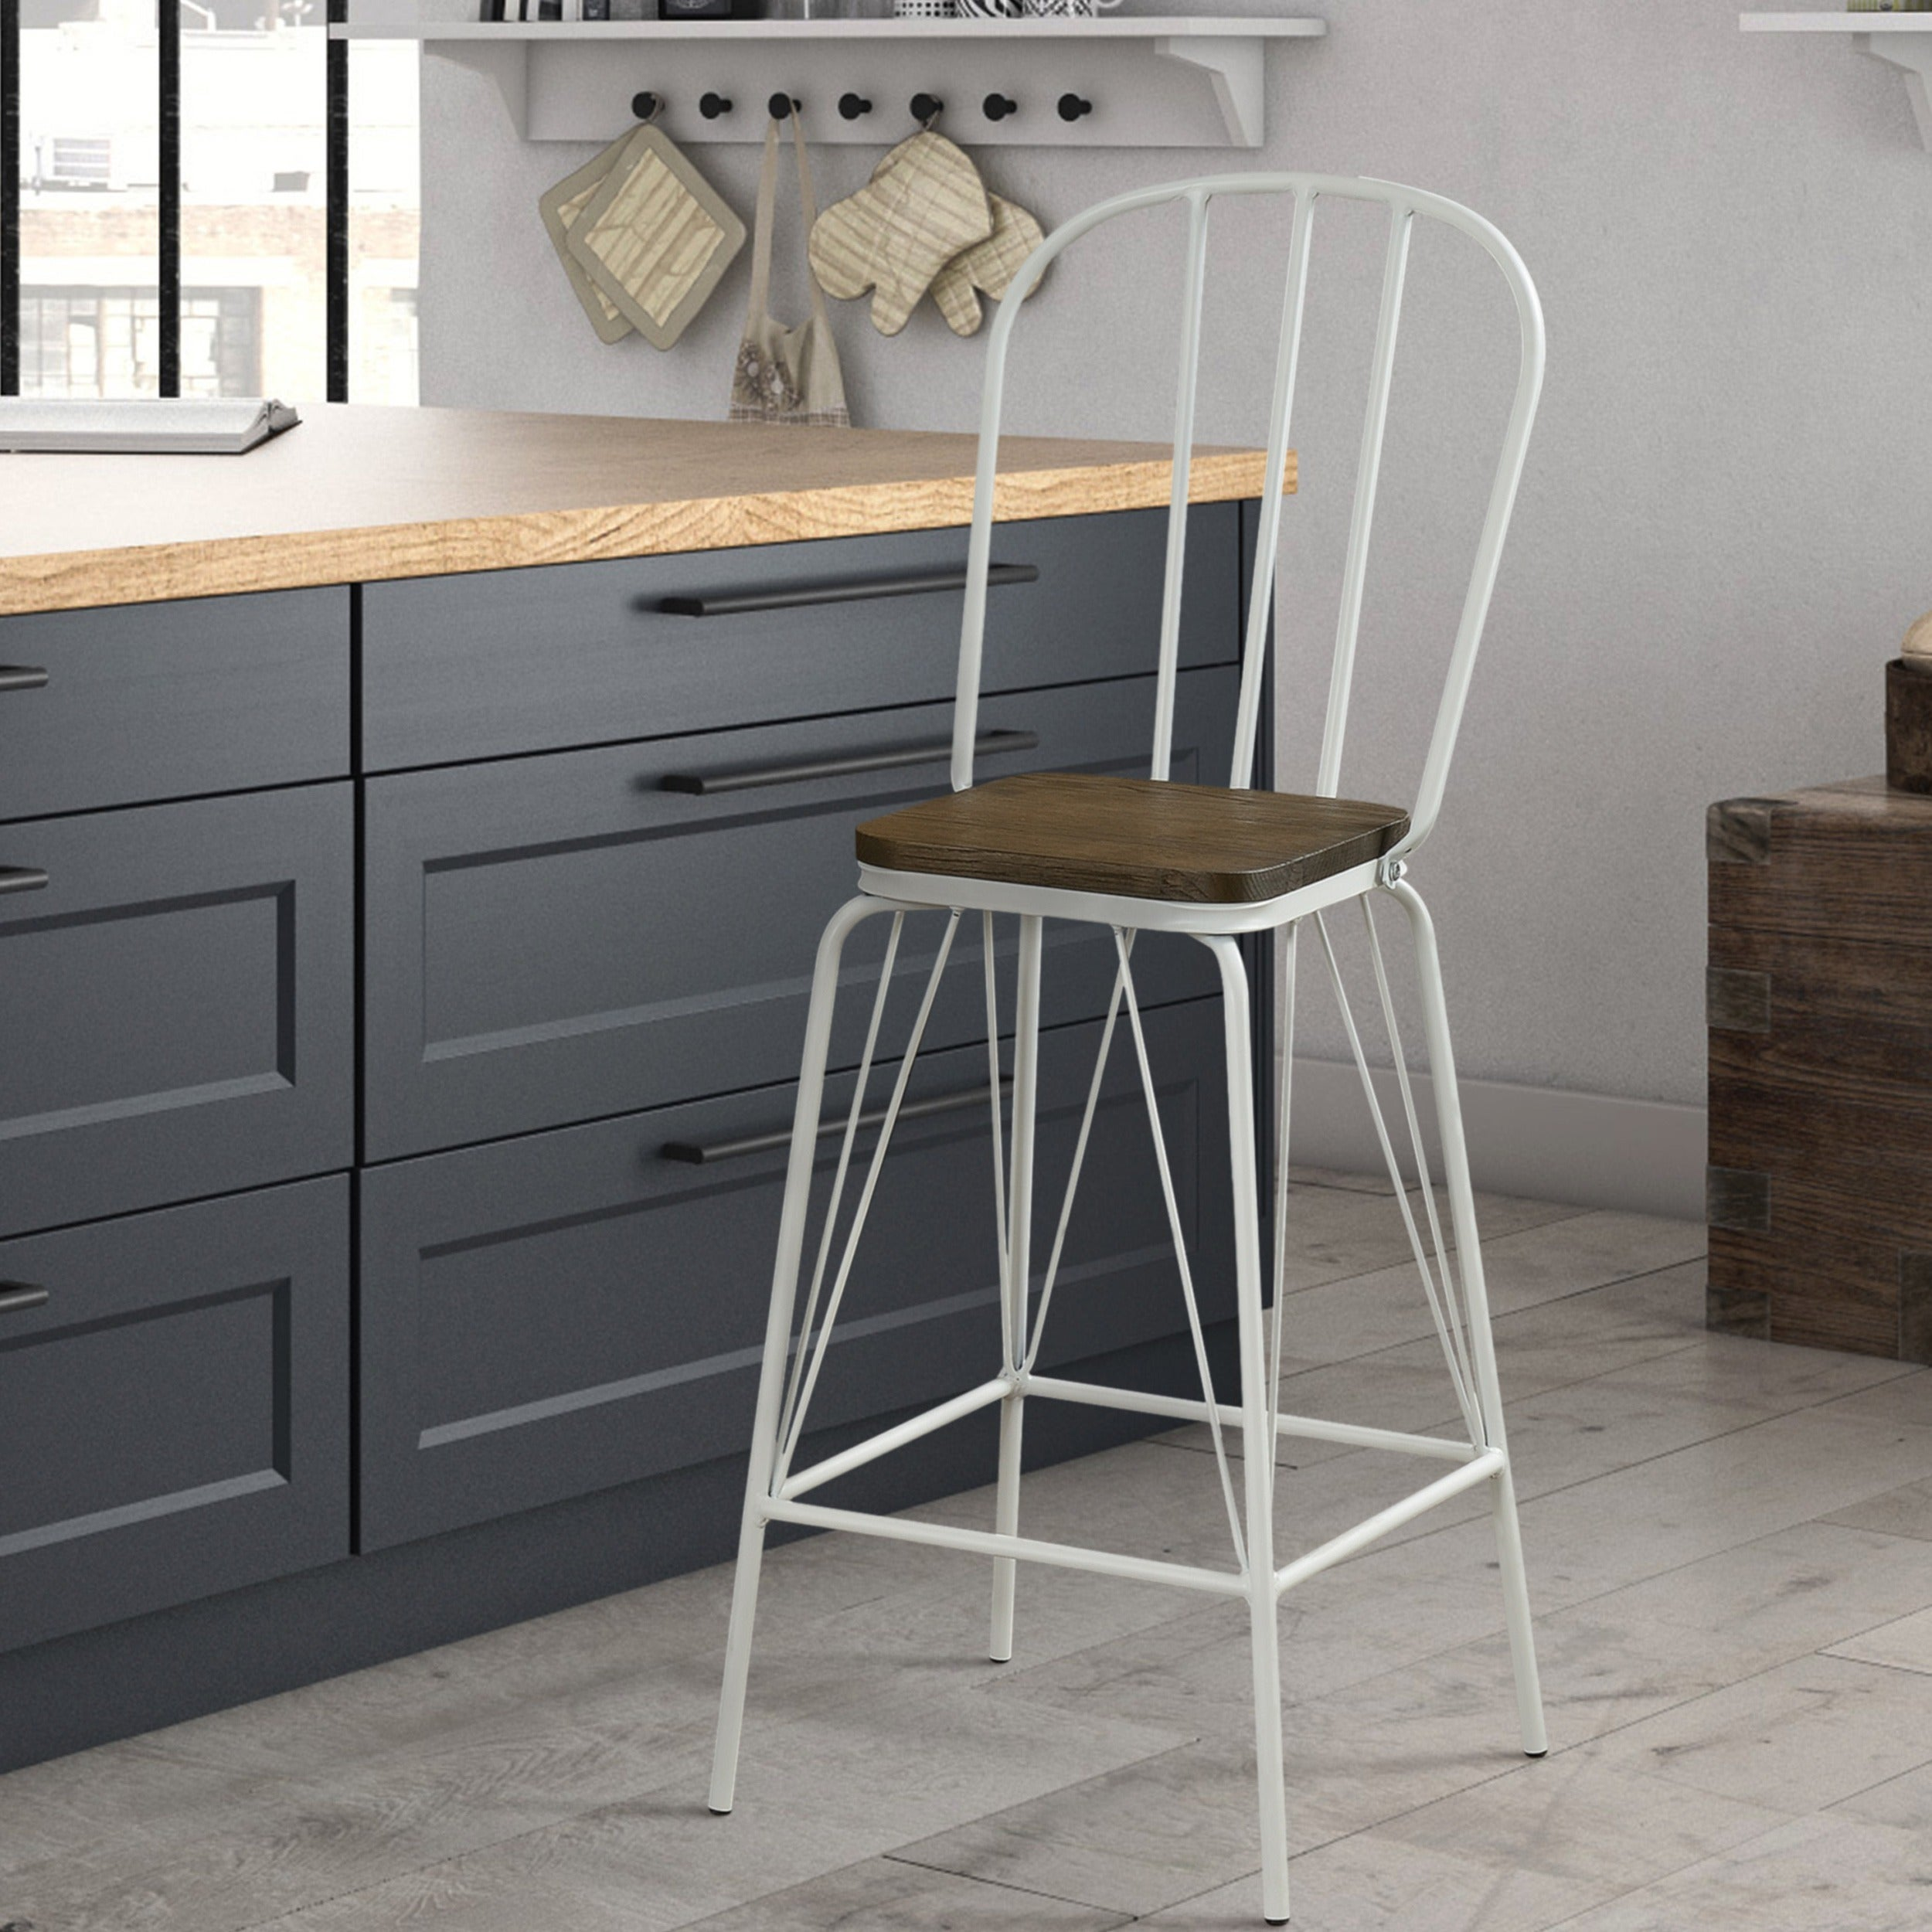 Shop furniture of america jack modern farmhouse counter height chair set of 2 w18 1 221 1 240h on sale free shipping today overstock com